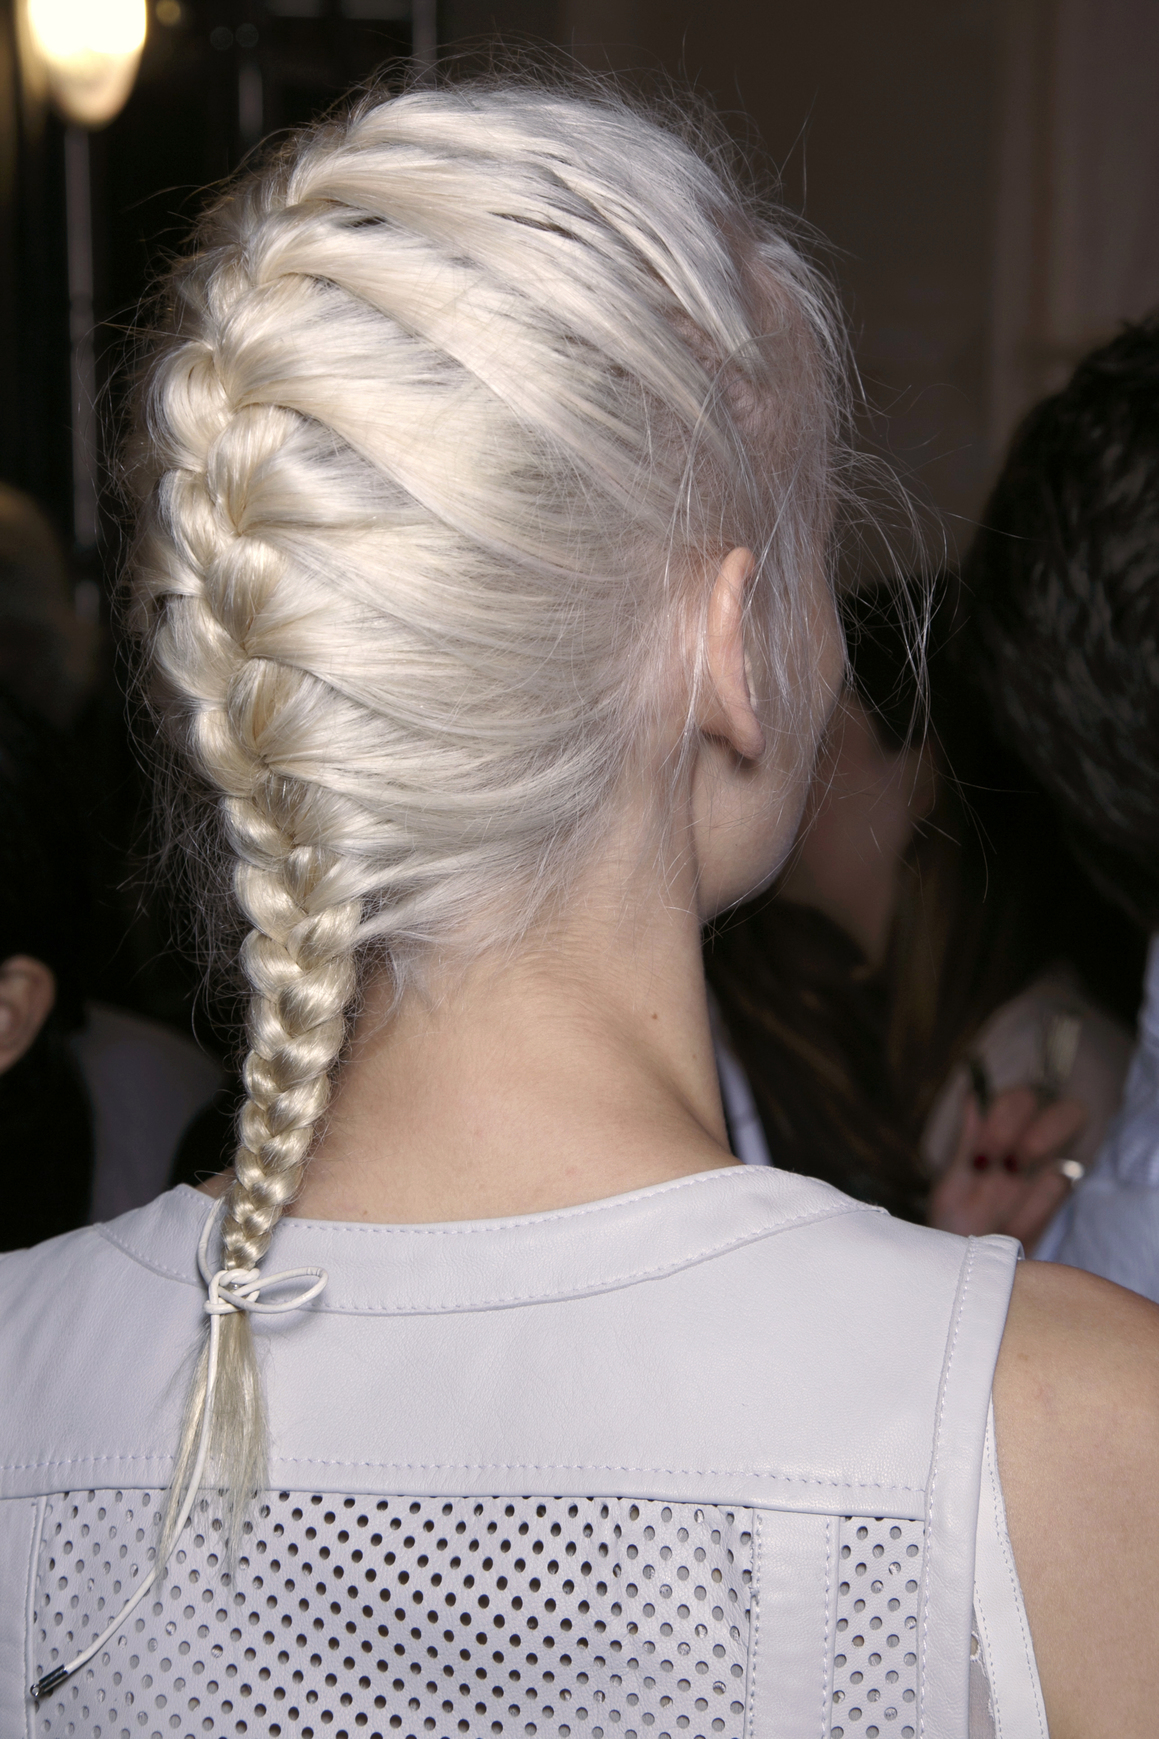 Heres How To French Braid Your Own Hair Stylecaster